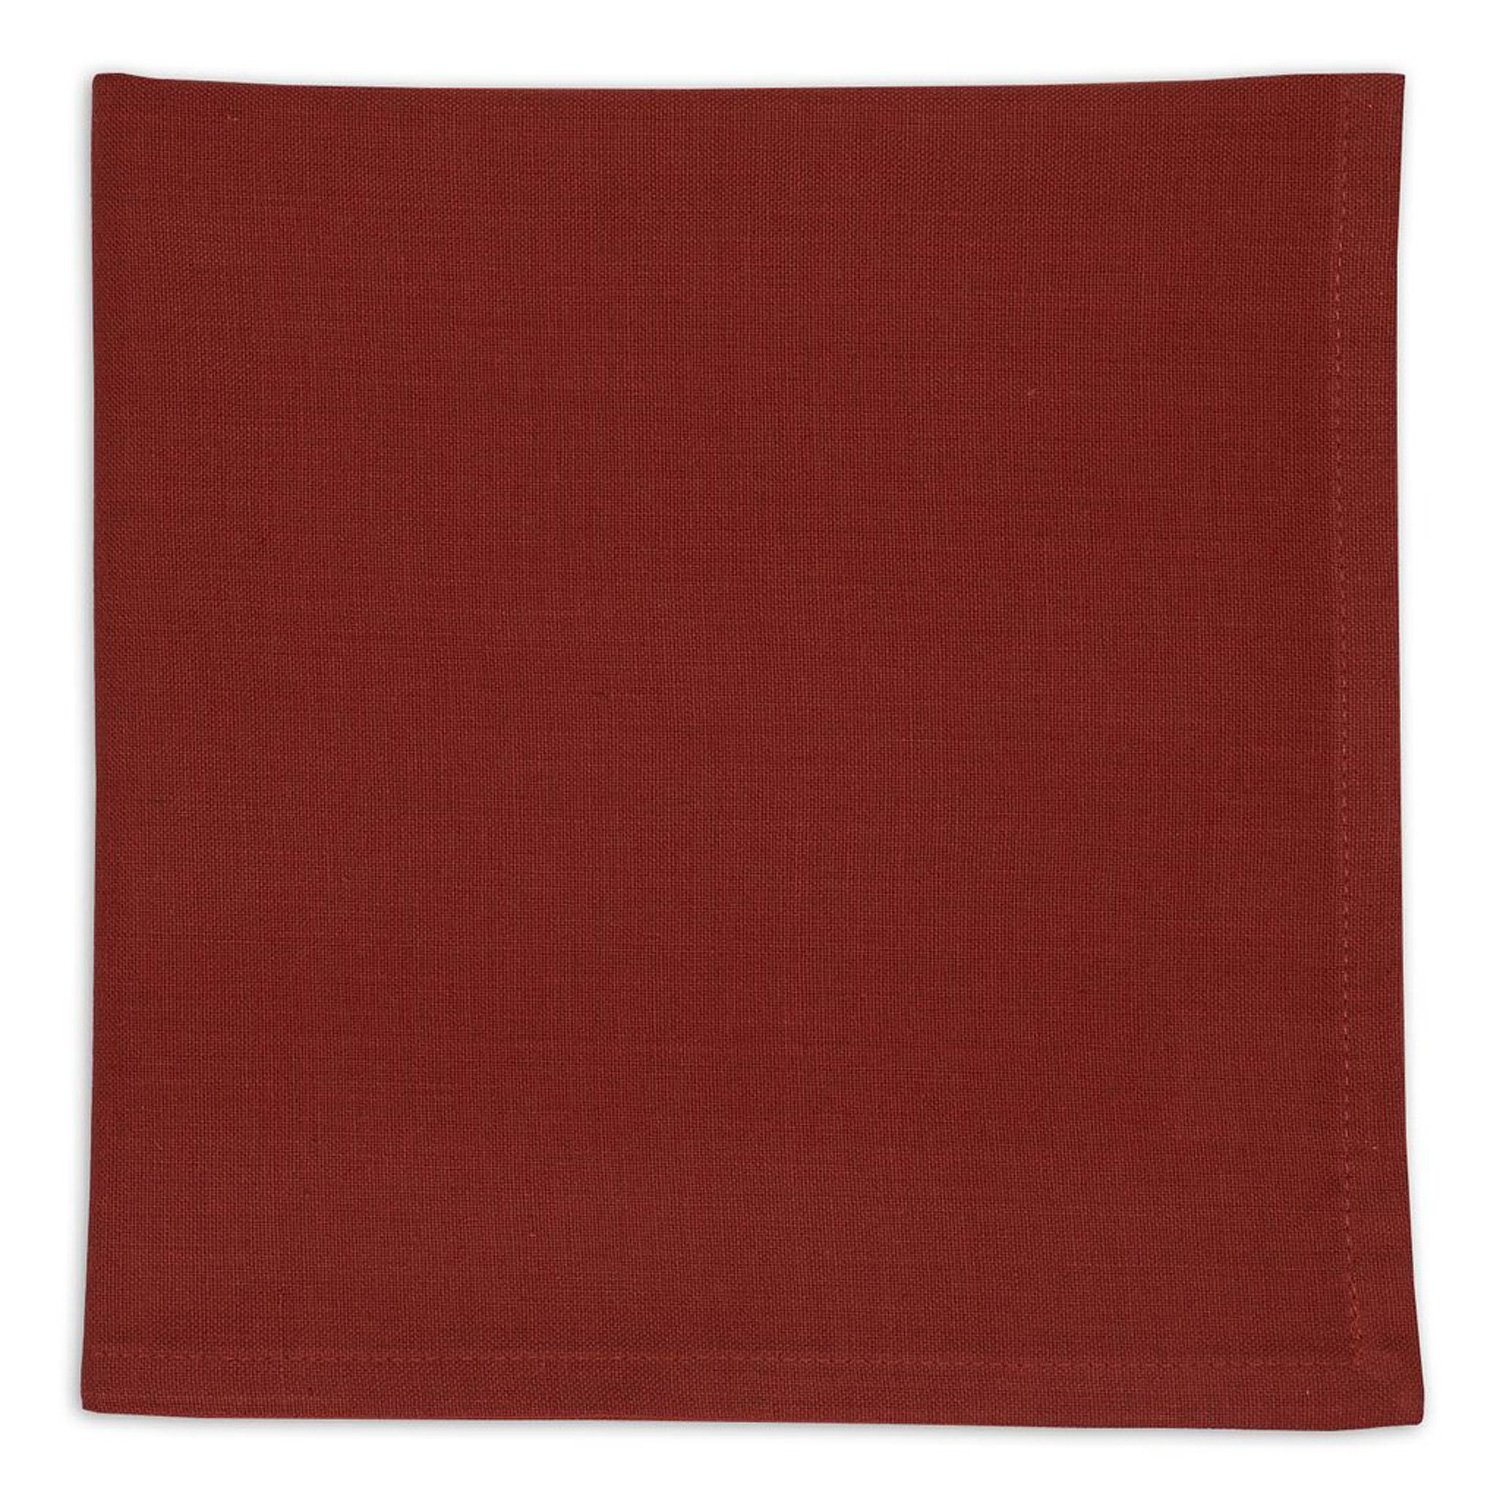 Design Imports A Walk in the Woods Table Linens, 20-Inch by 20-Inch Napkin, Picante by Design Imports (Image #1)